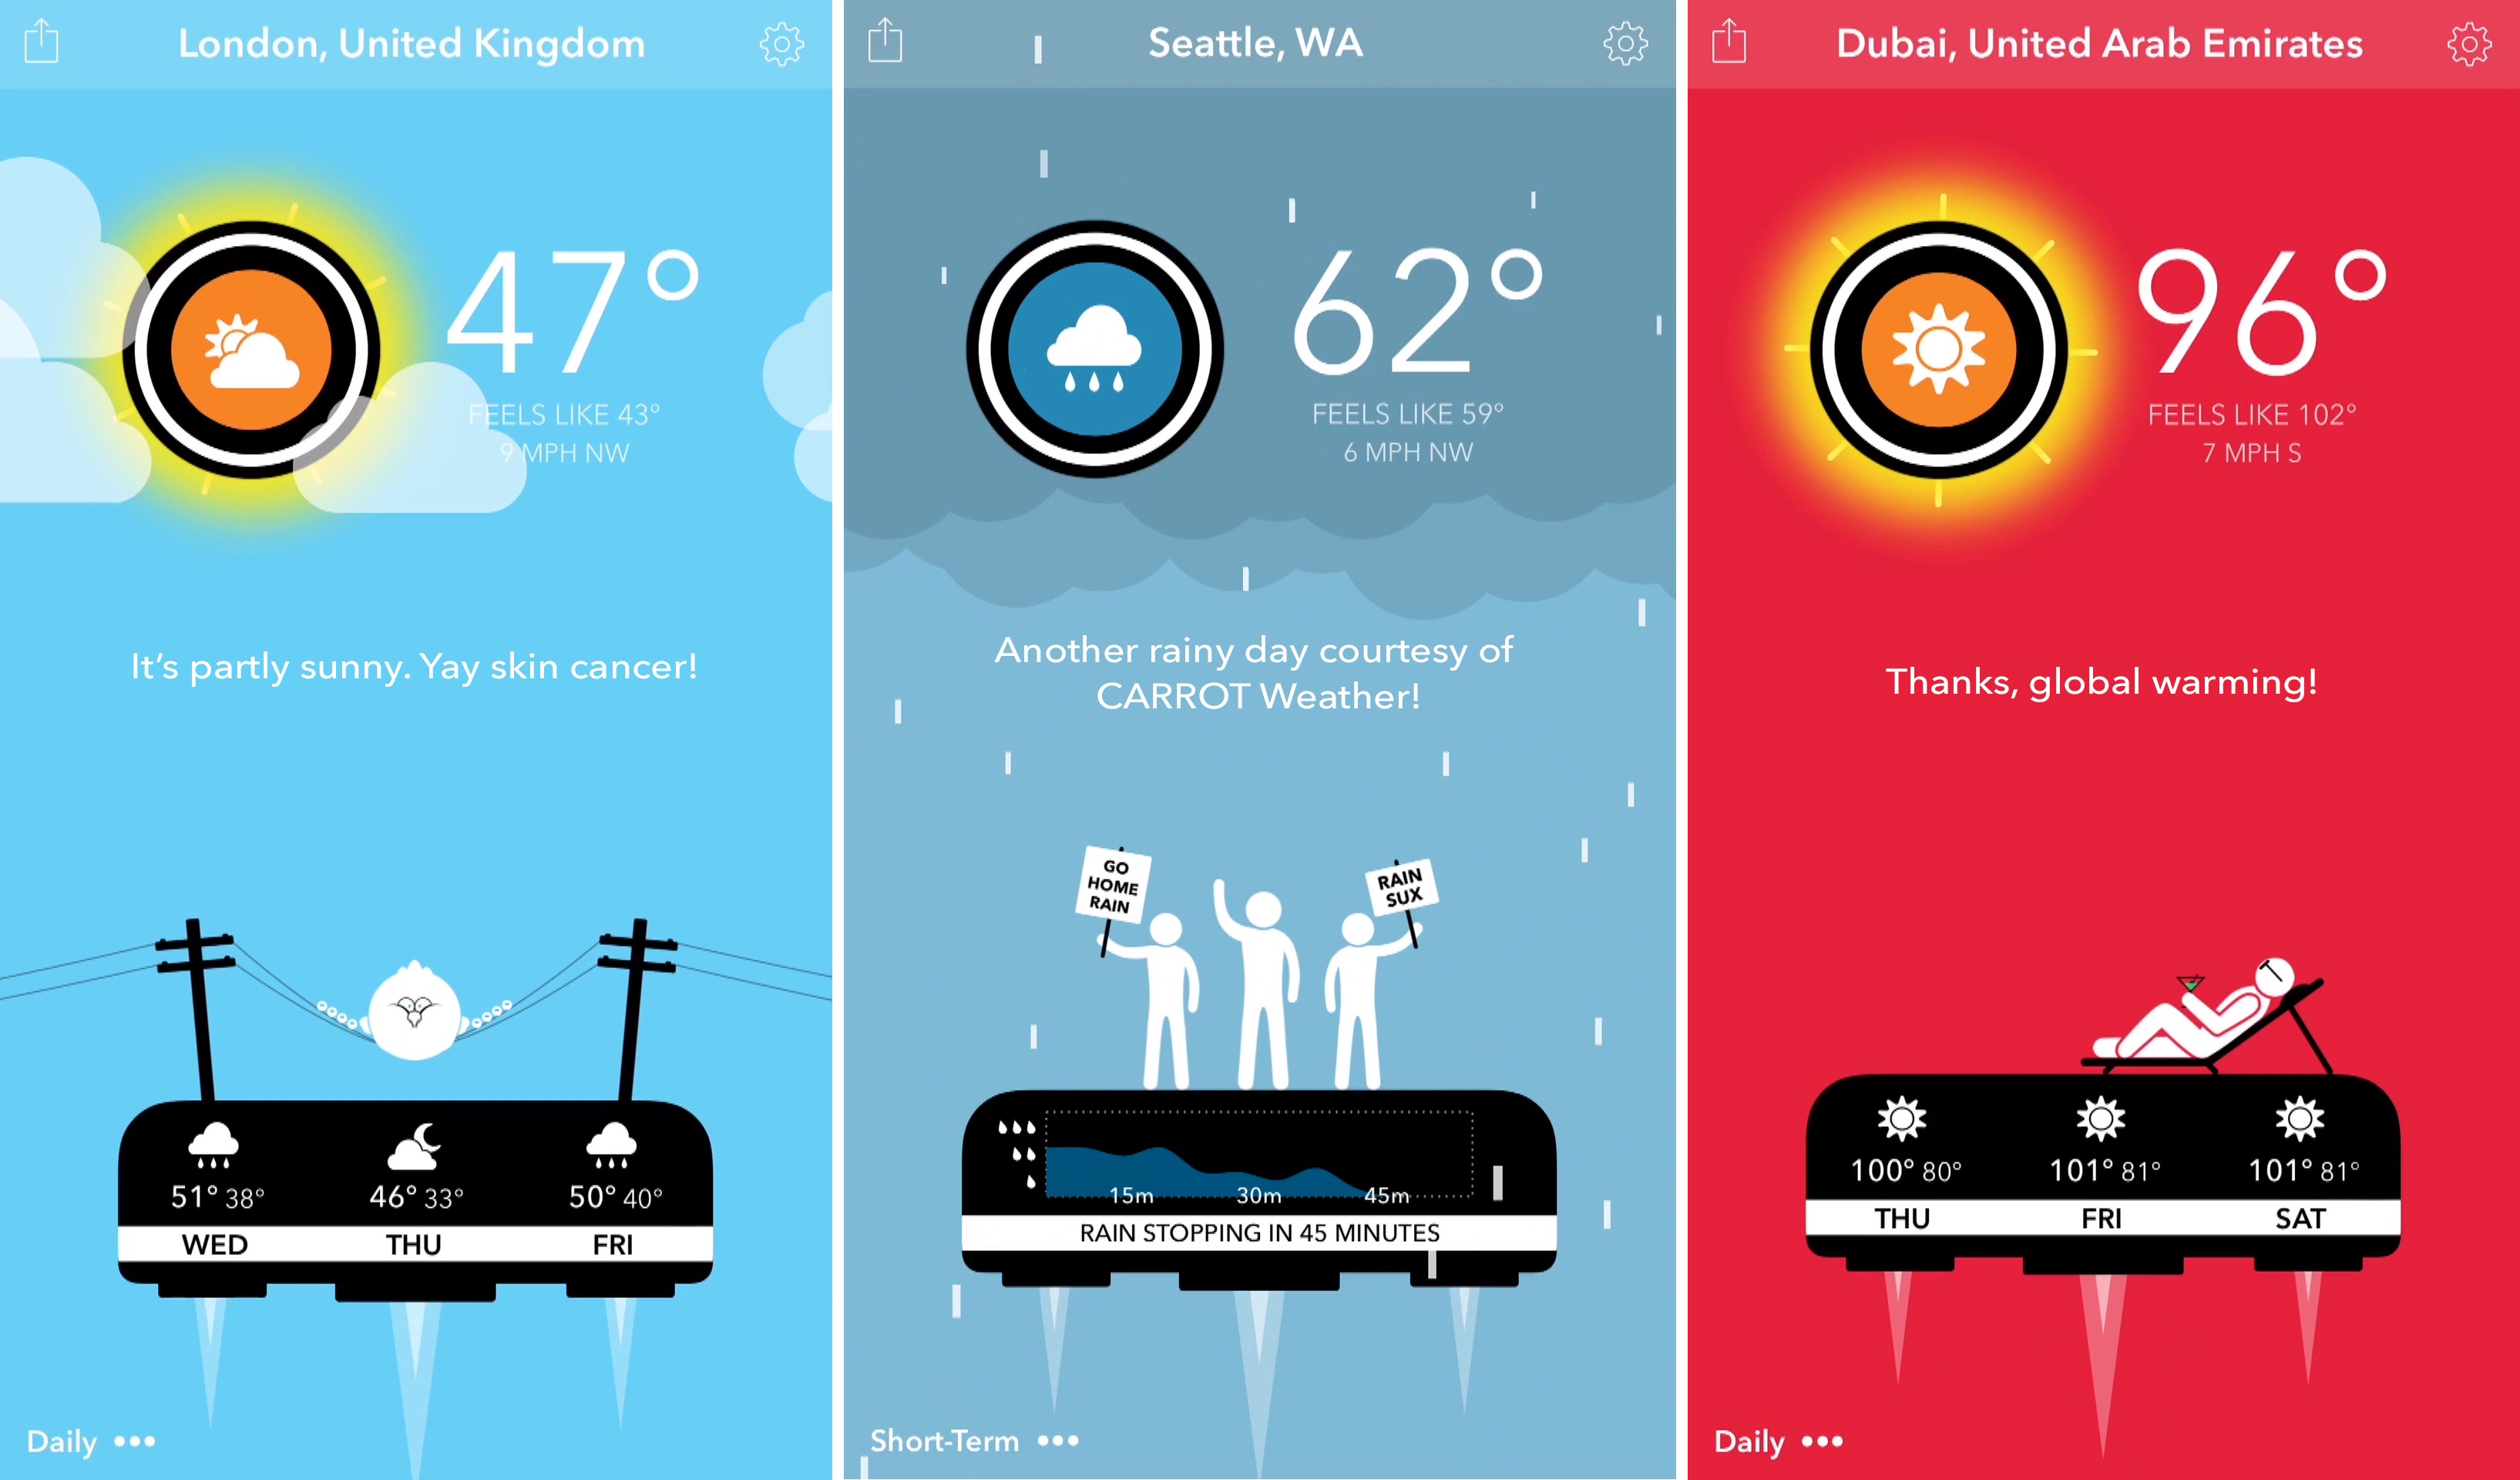 Carrot Weather 1.0 for iOS iPhone screenshot 004